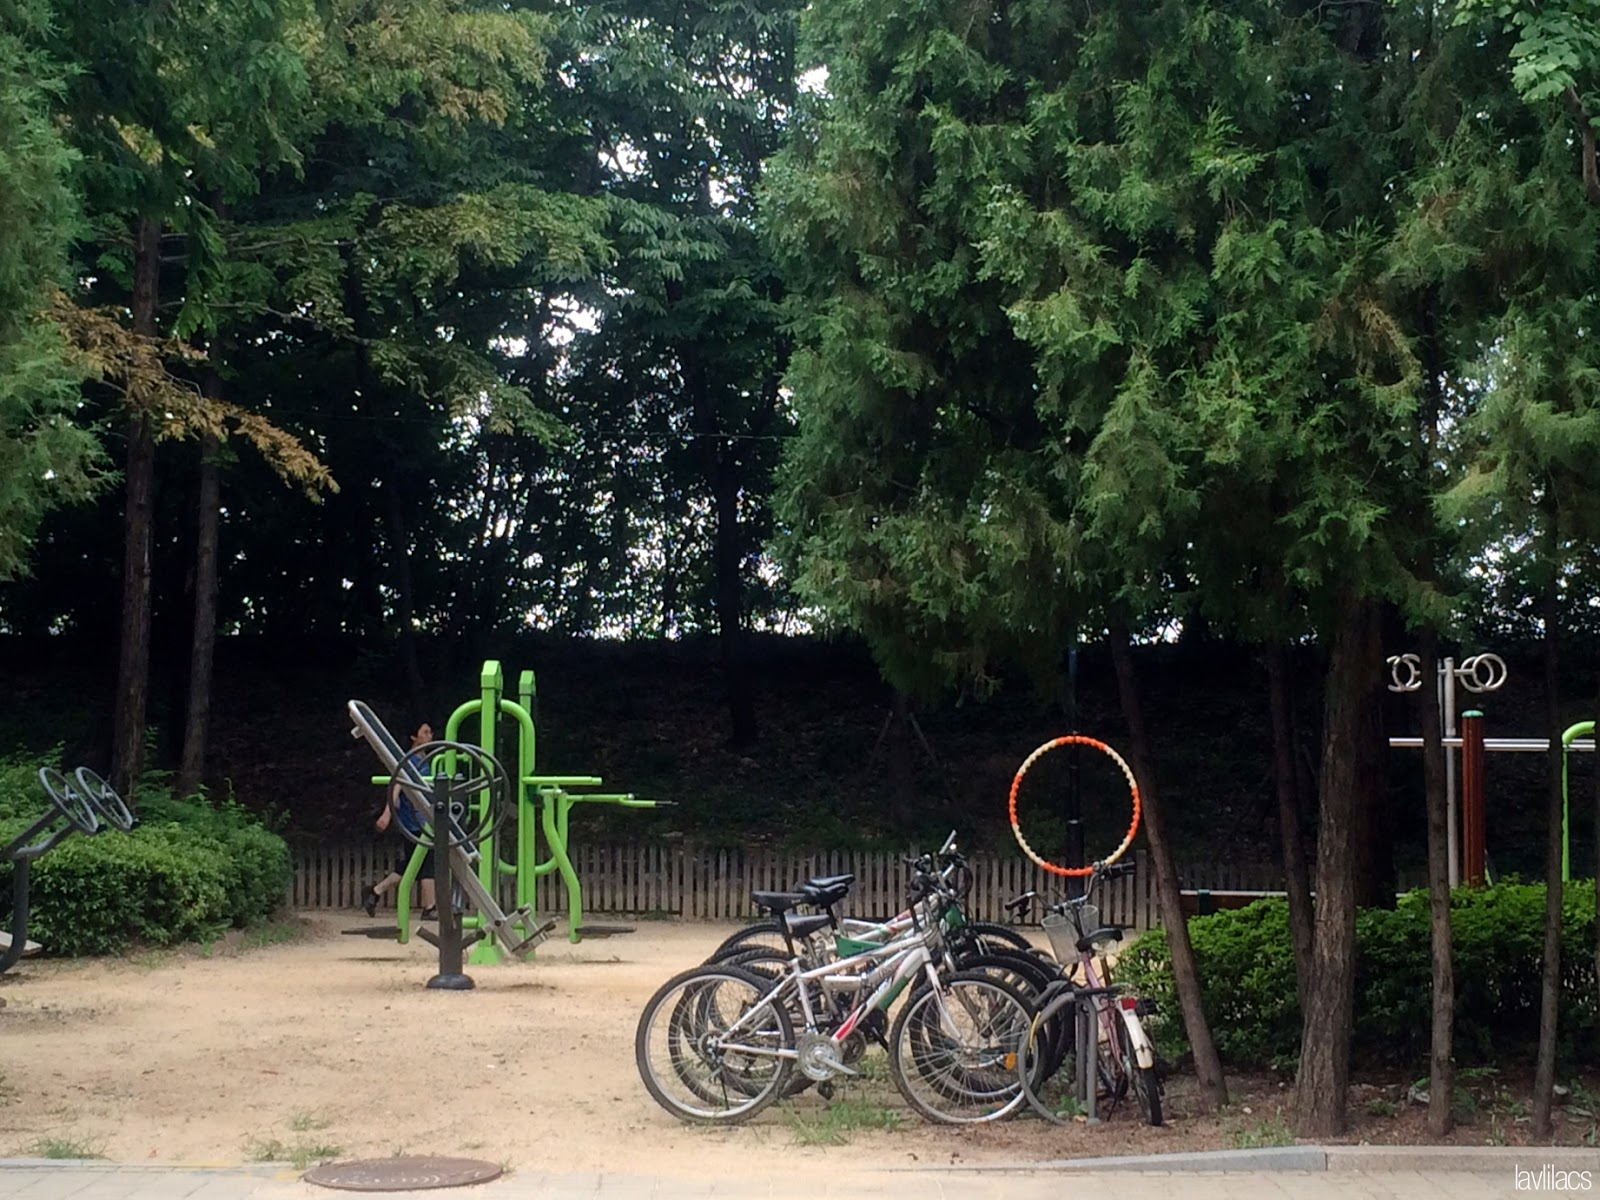 Seoul, Korea - Summer Study Abroad 2014 - Exercise equipment in parks